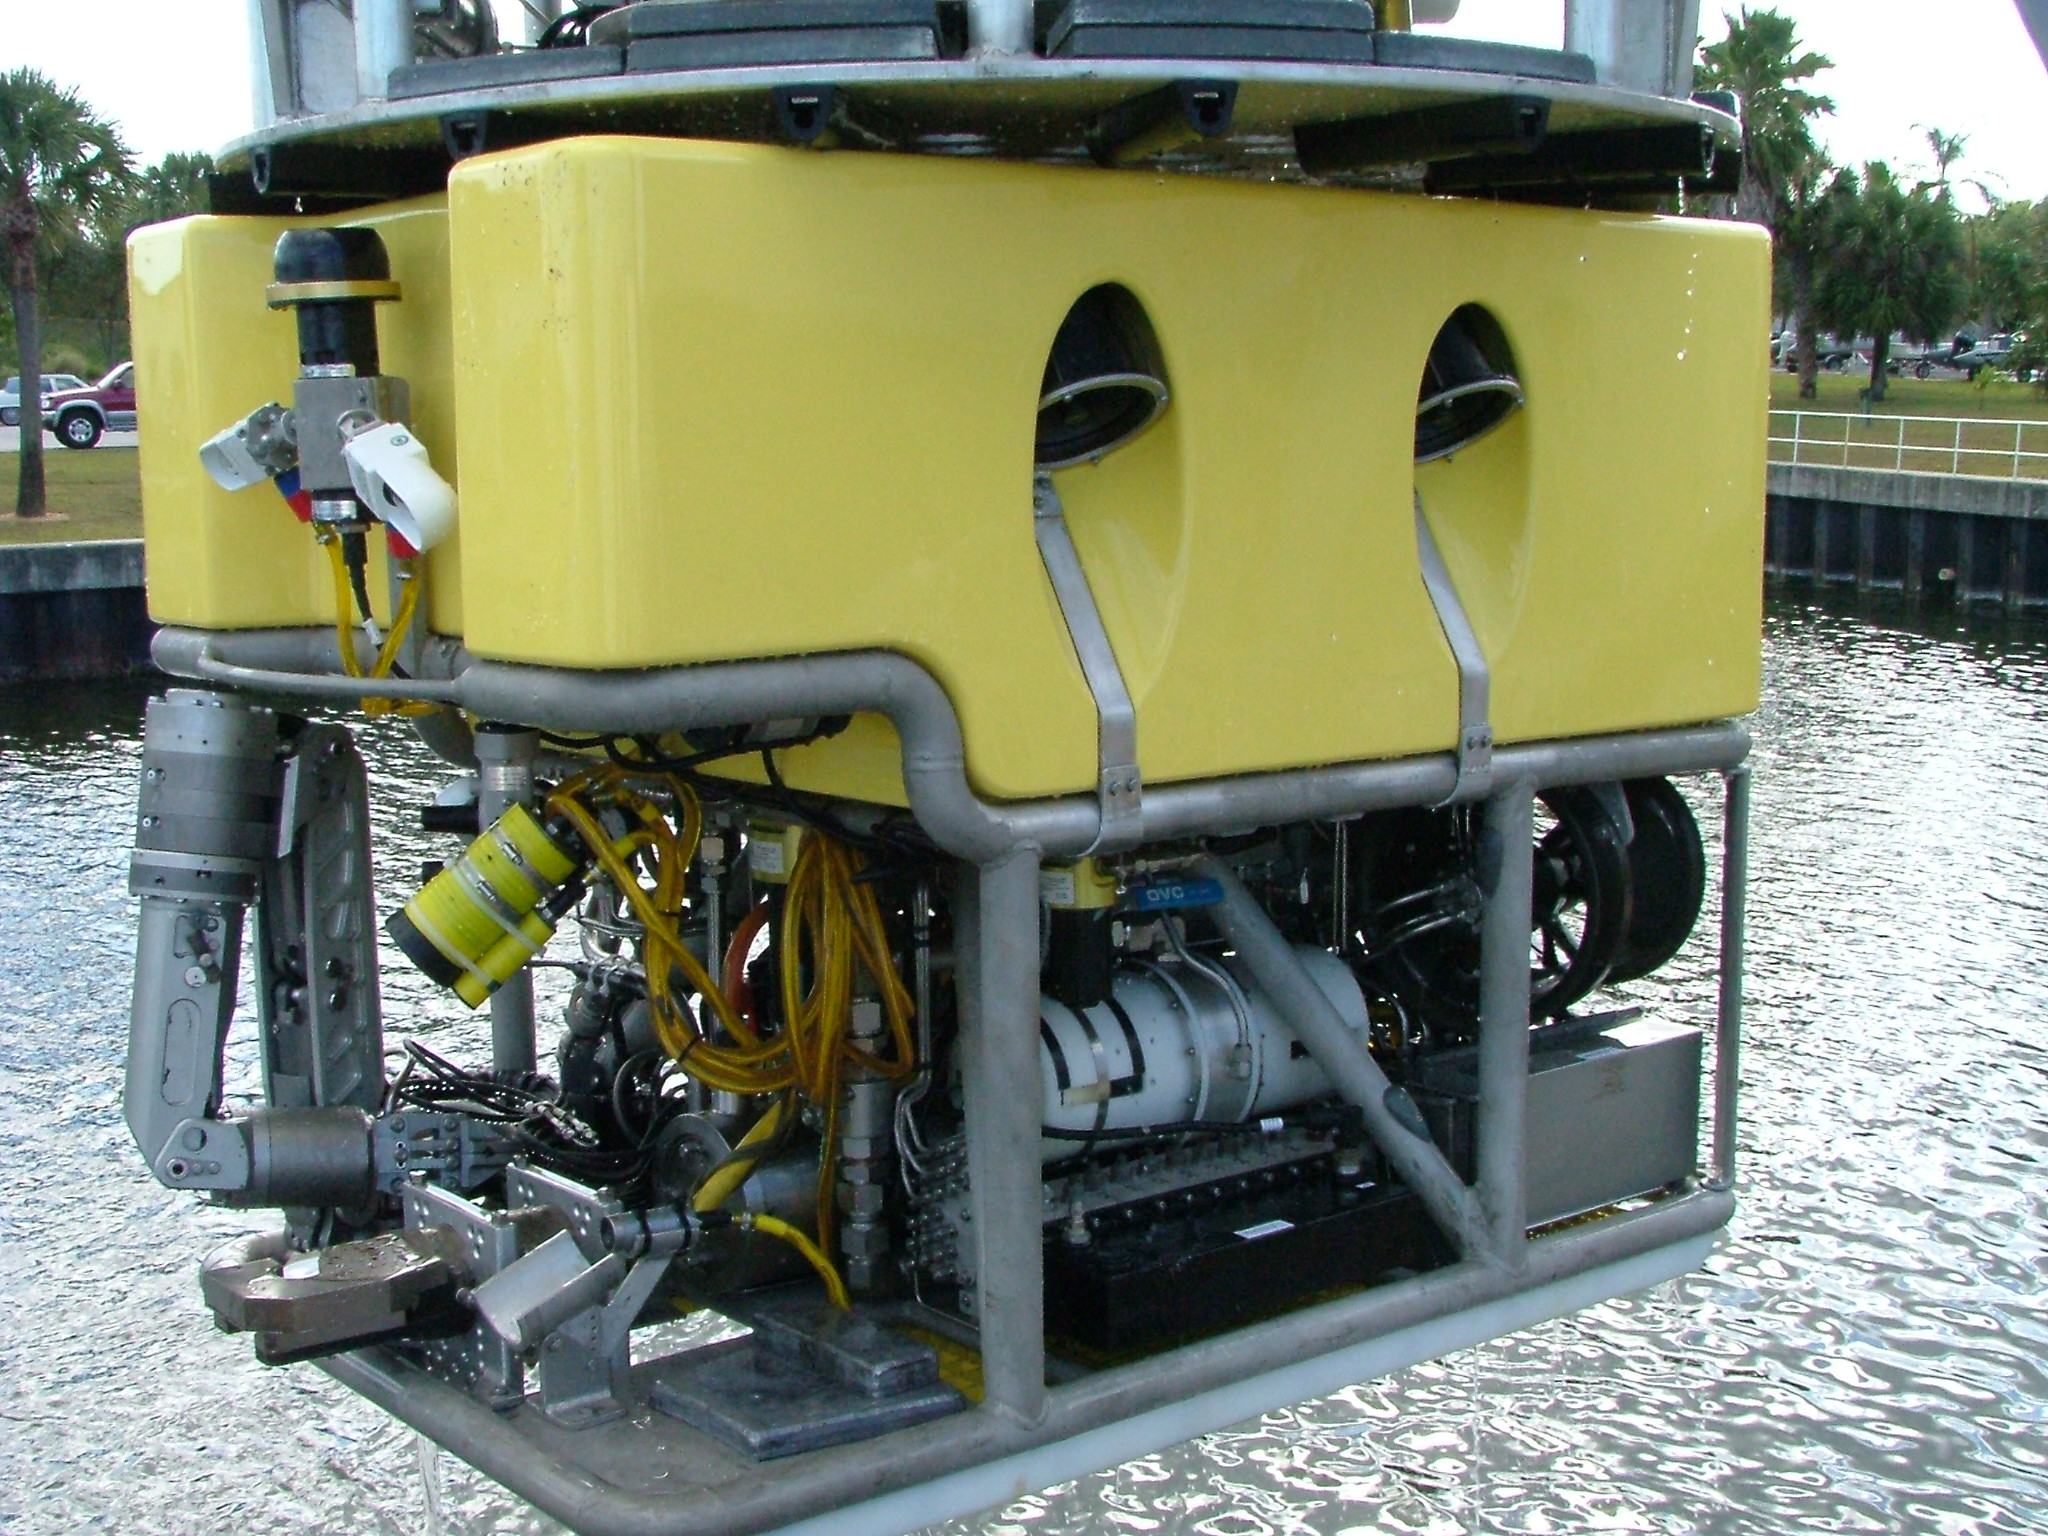 HBOI@FAU custom built ROV - Refurbished with new control and telemetry system.